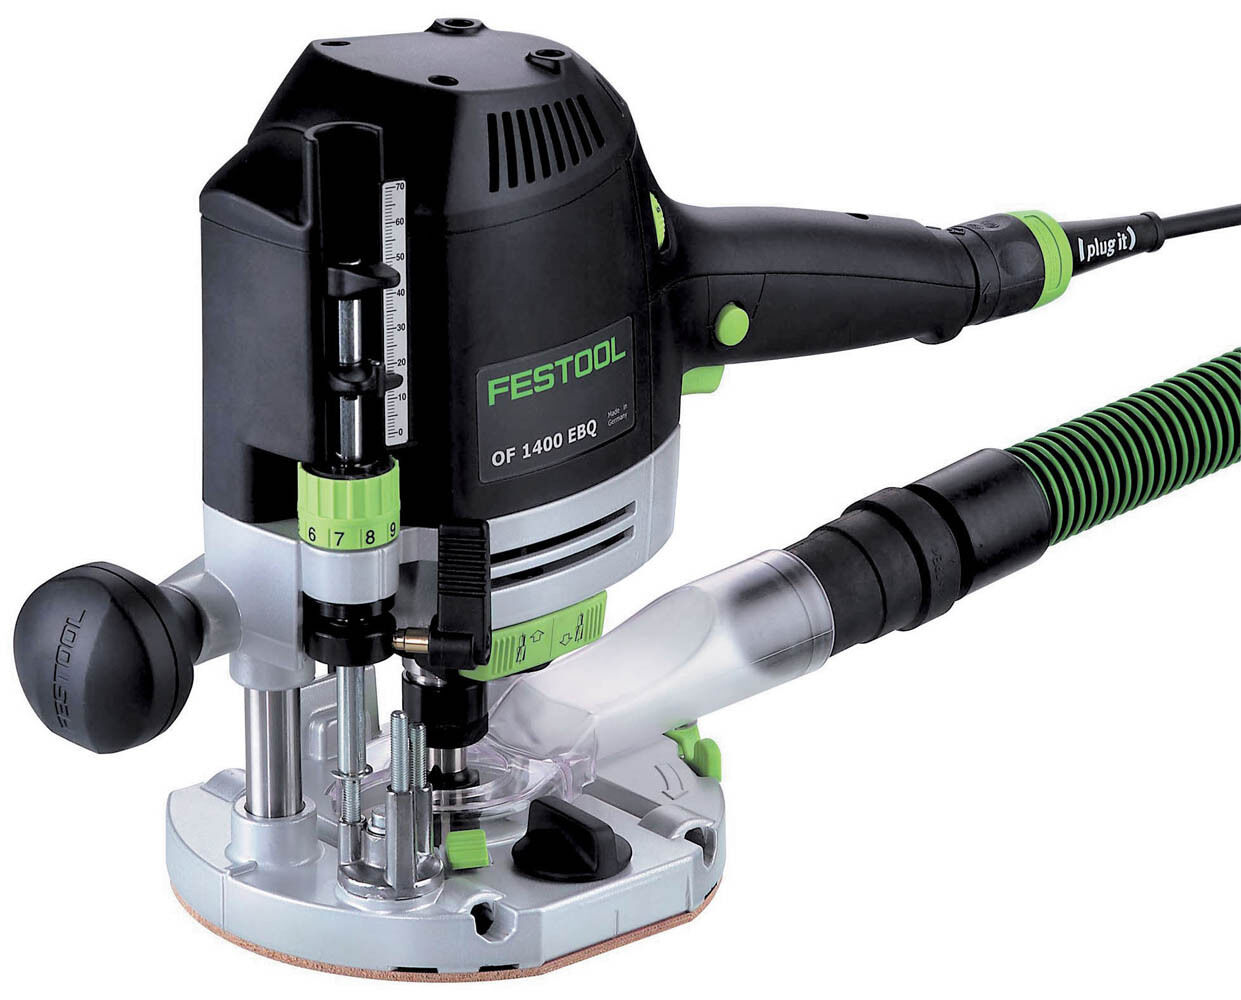 Festool Plunge Router   OF 1400 EBQ-Plus GB 240V   in Systainer   574345